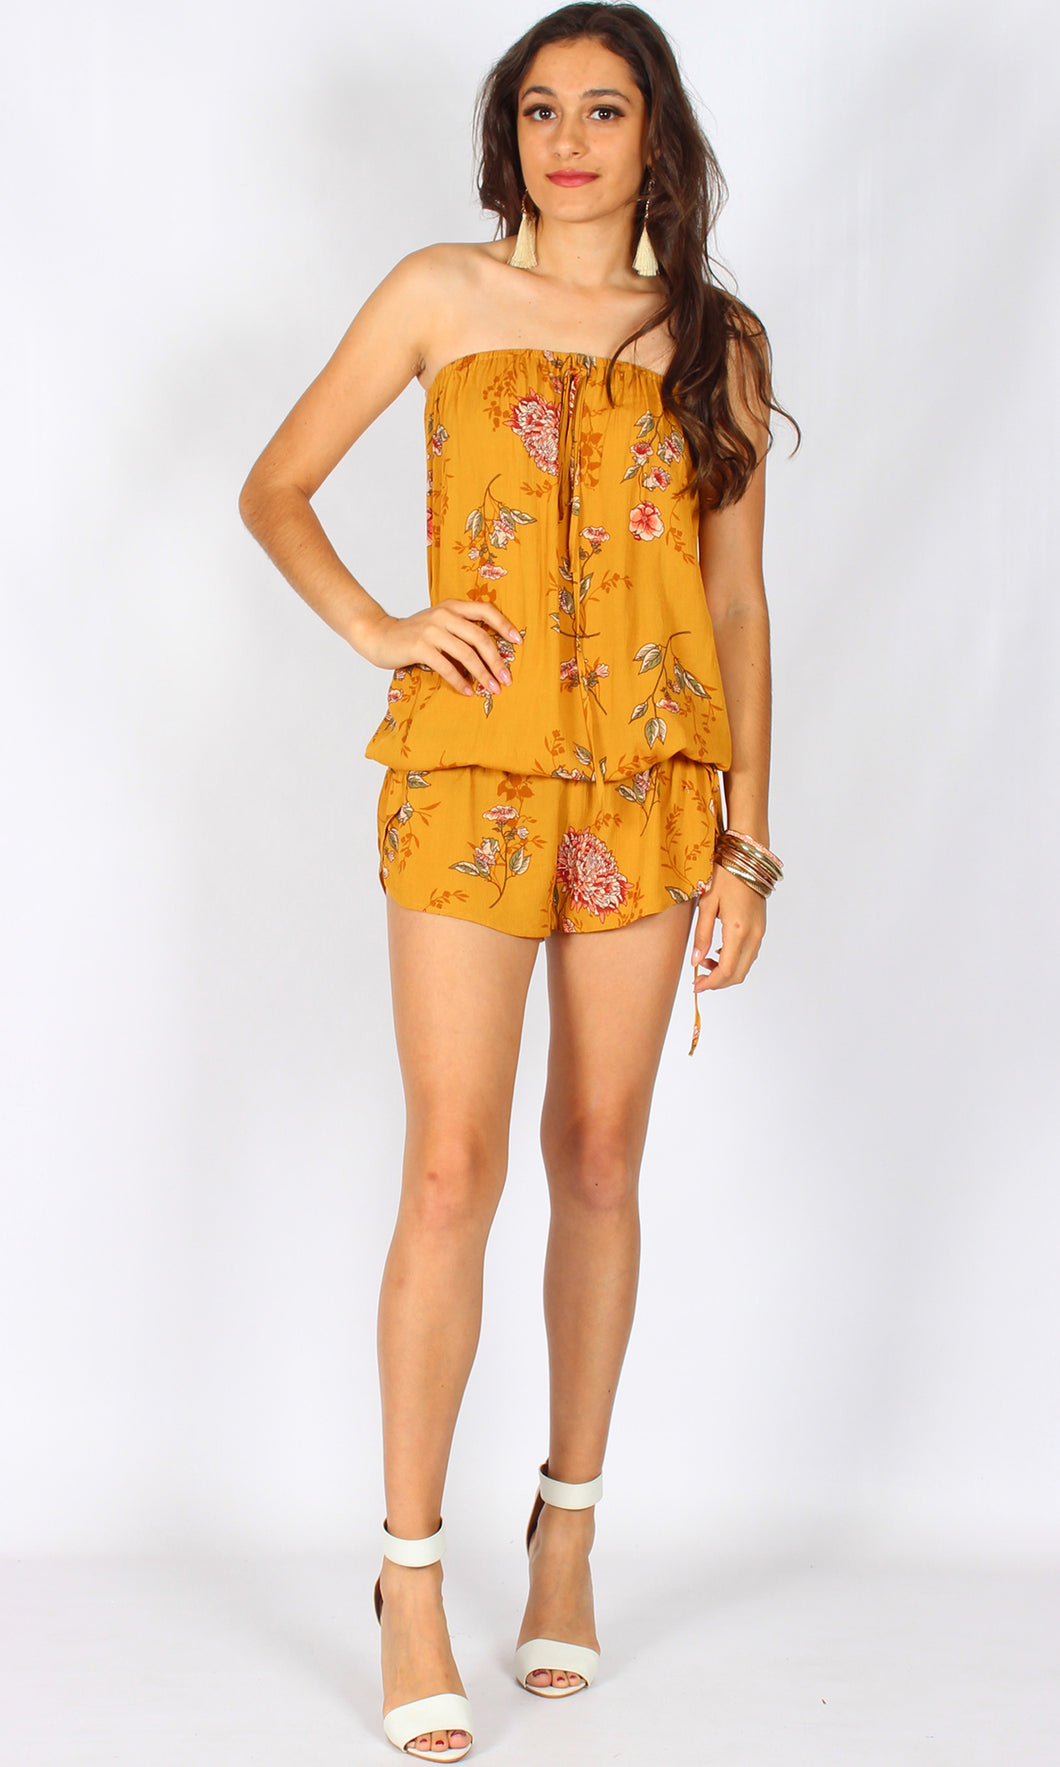 LV777-2SS Mustard Strapless Floral Playsuit (Pack)